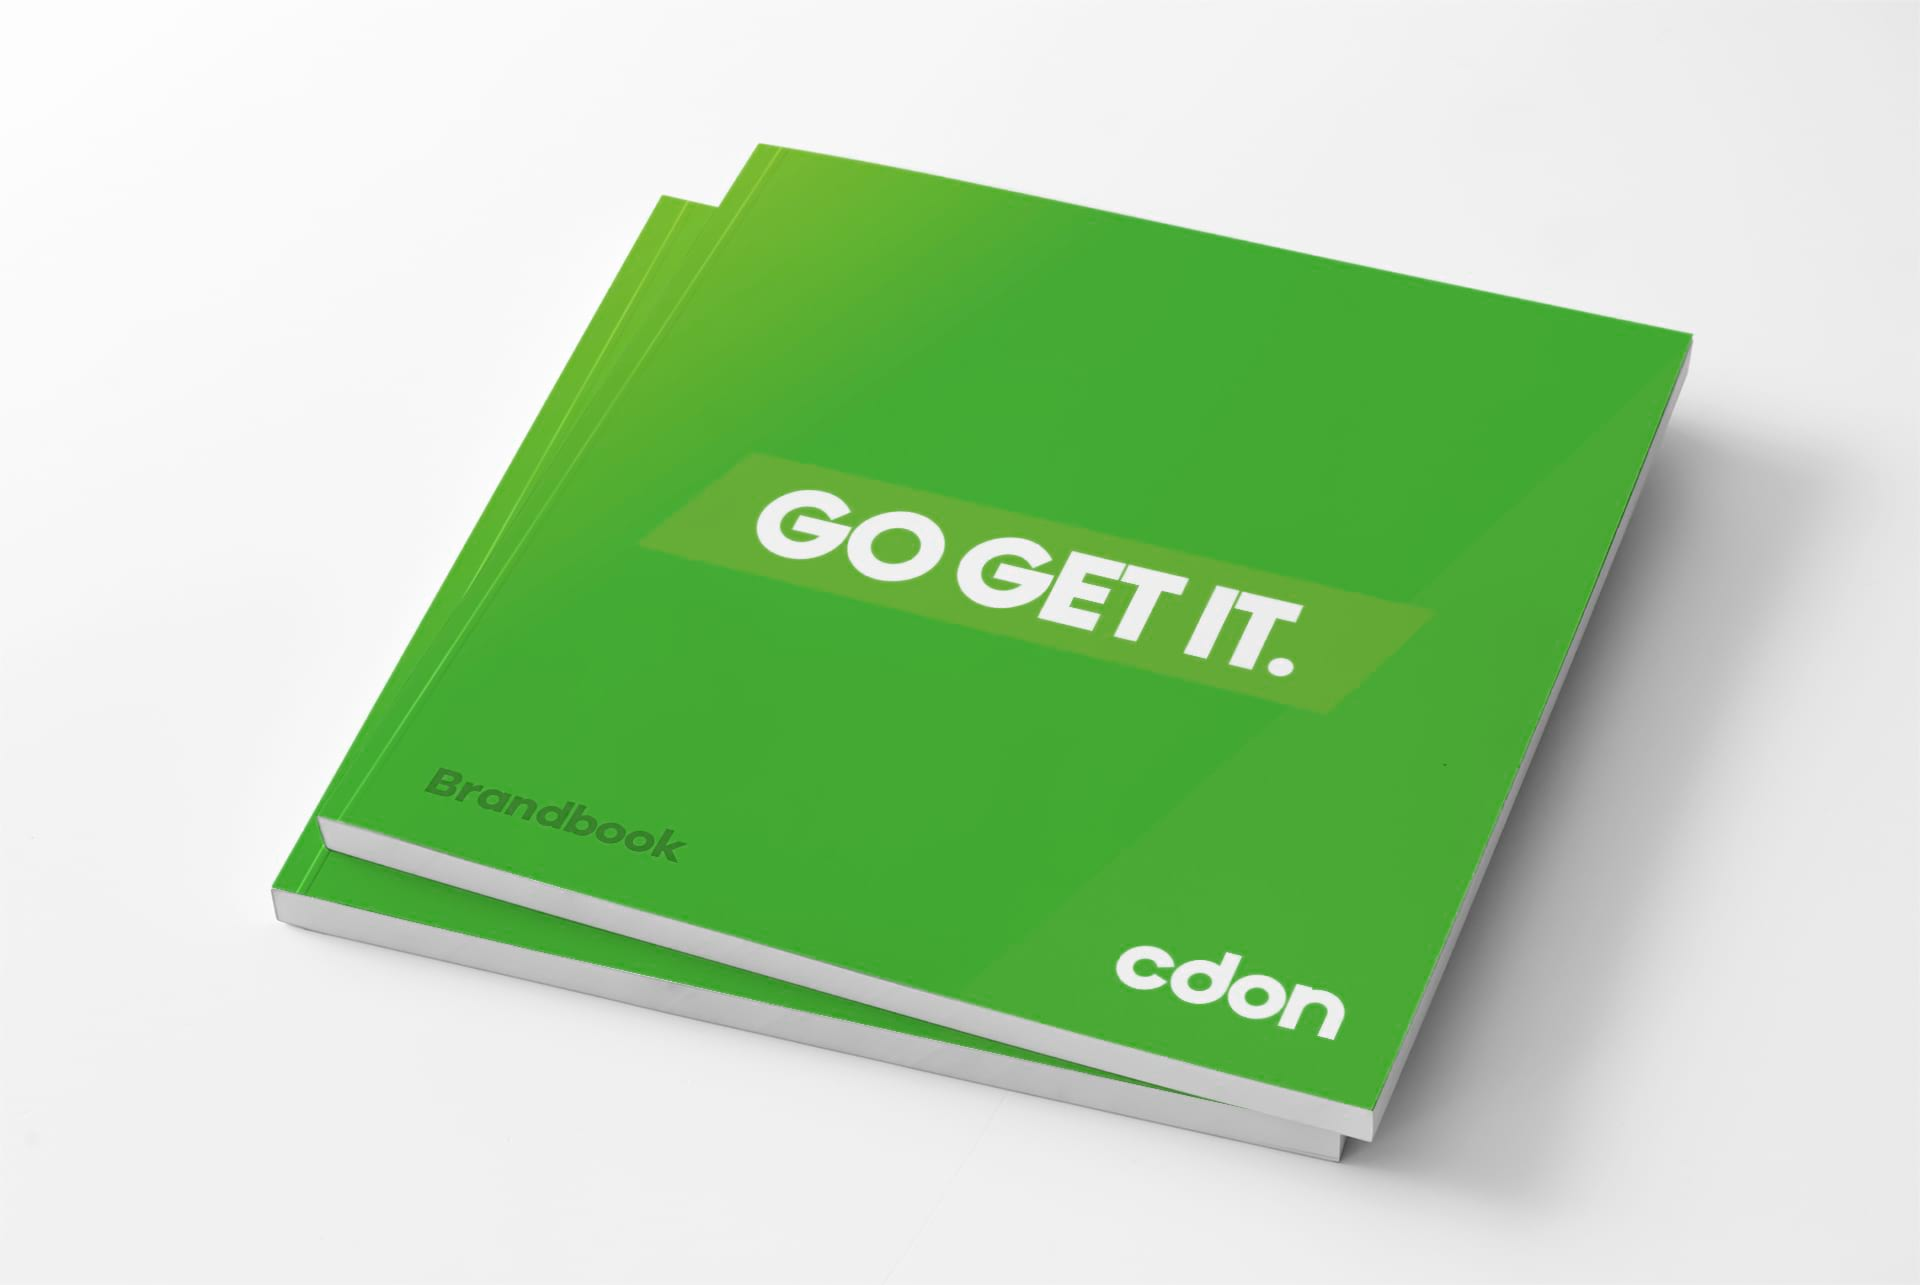 cdon brandbook, go get it